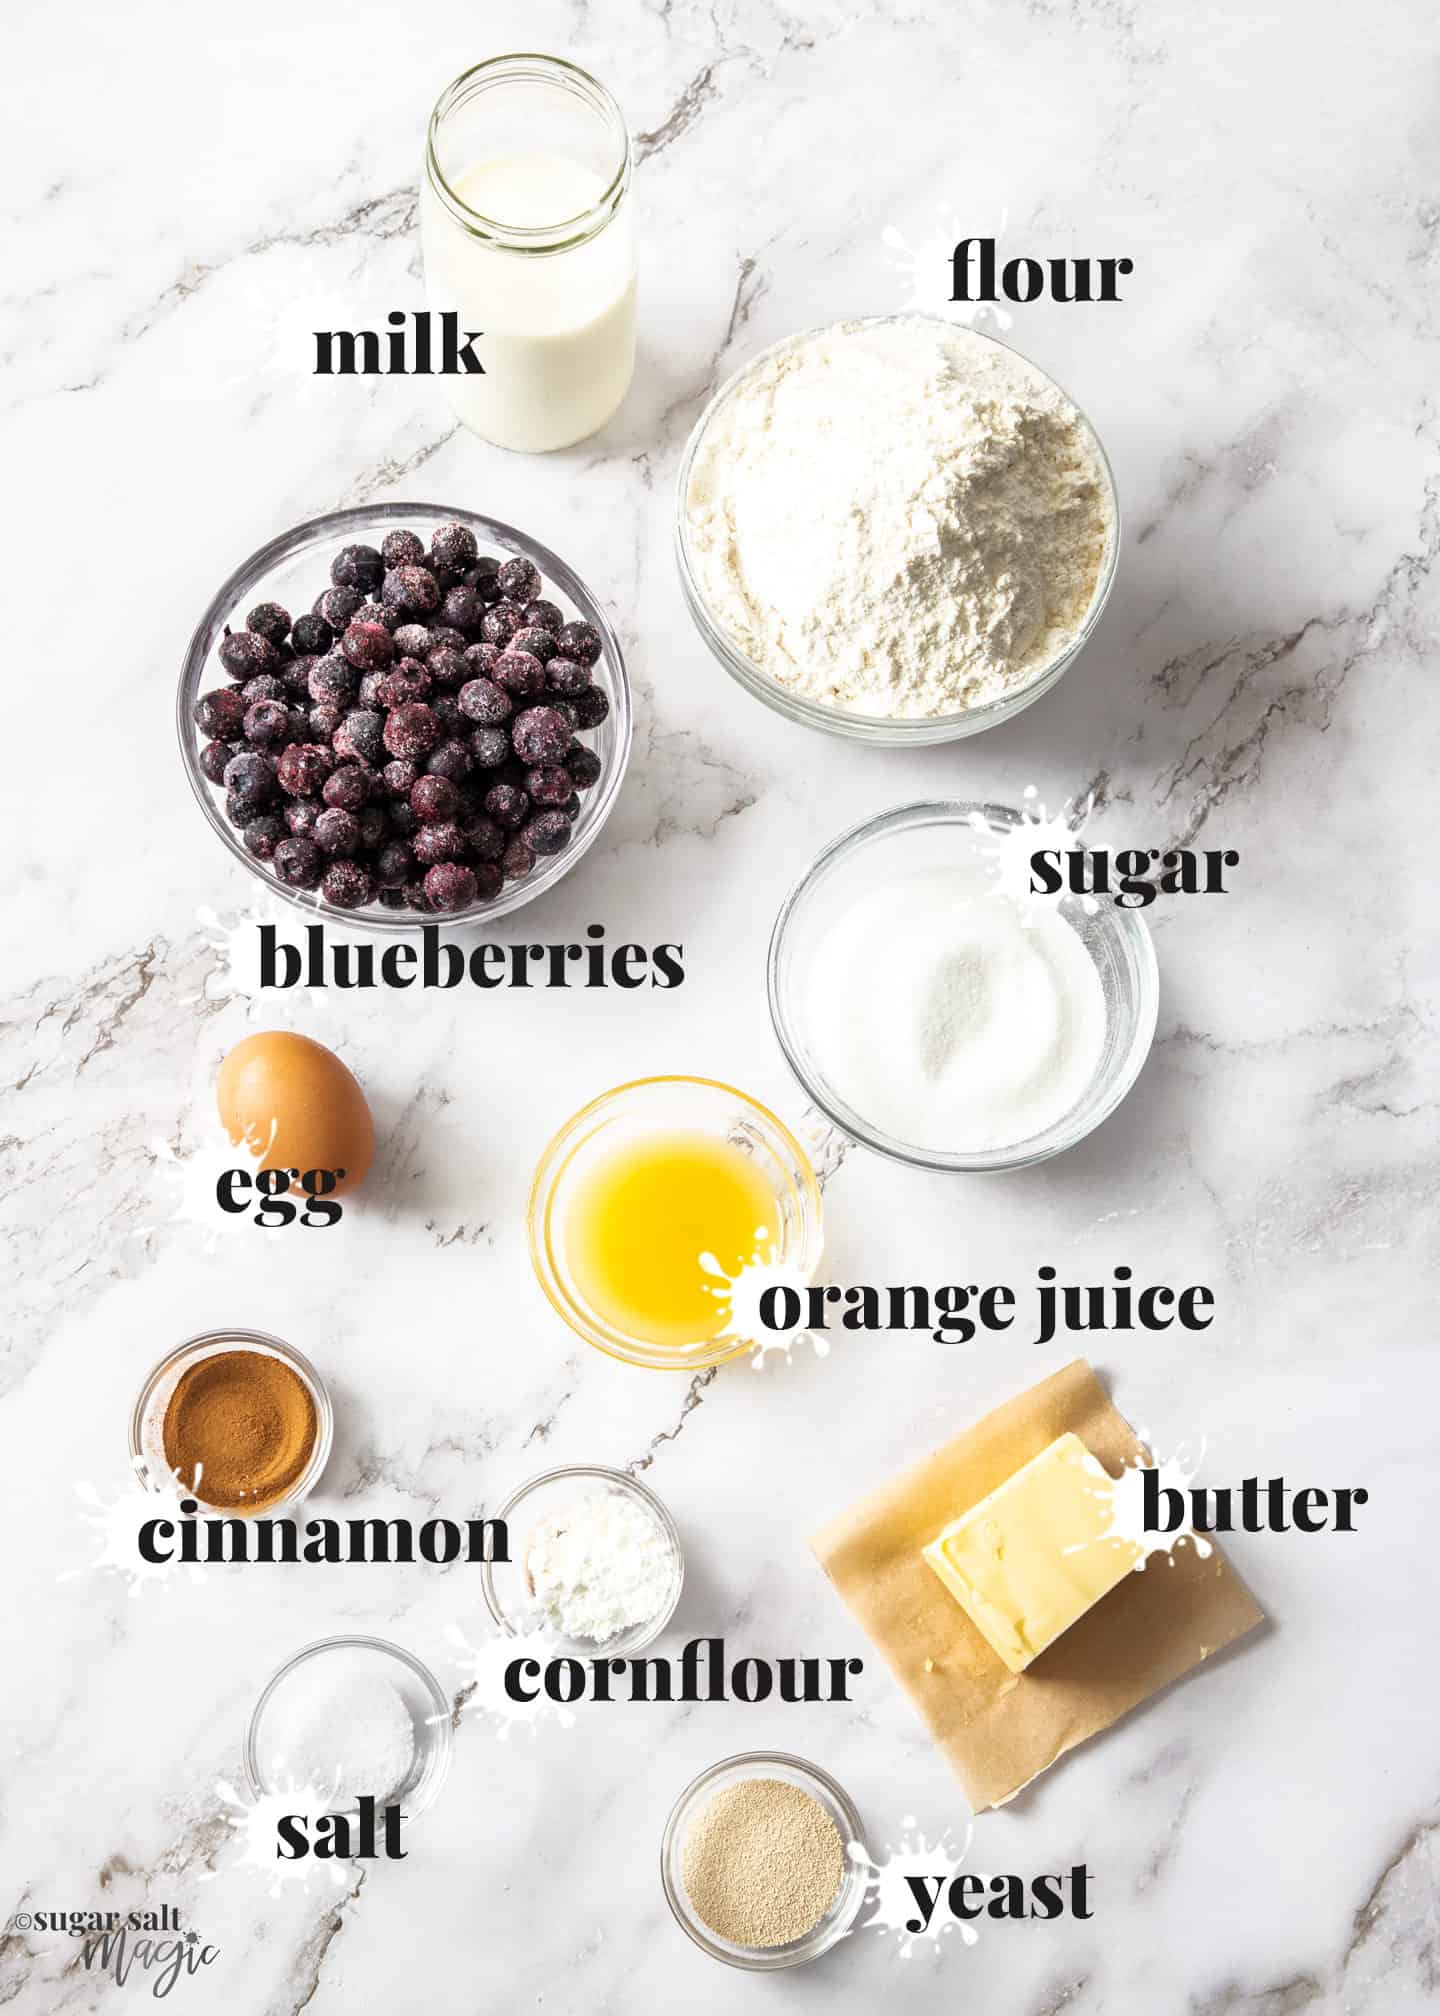 Ingredients for blueberry cinnamon rolls on a marble surface.